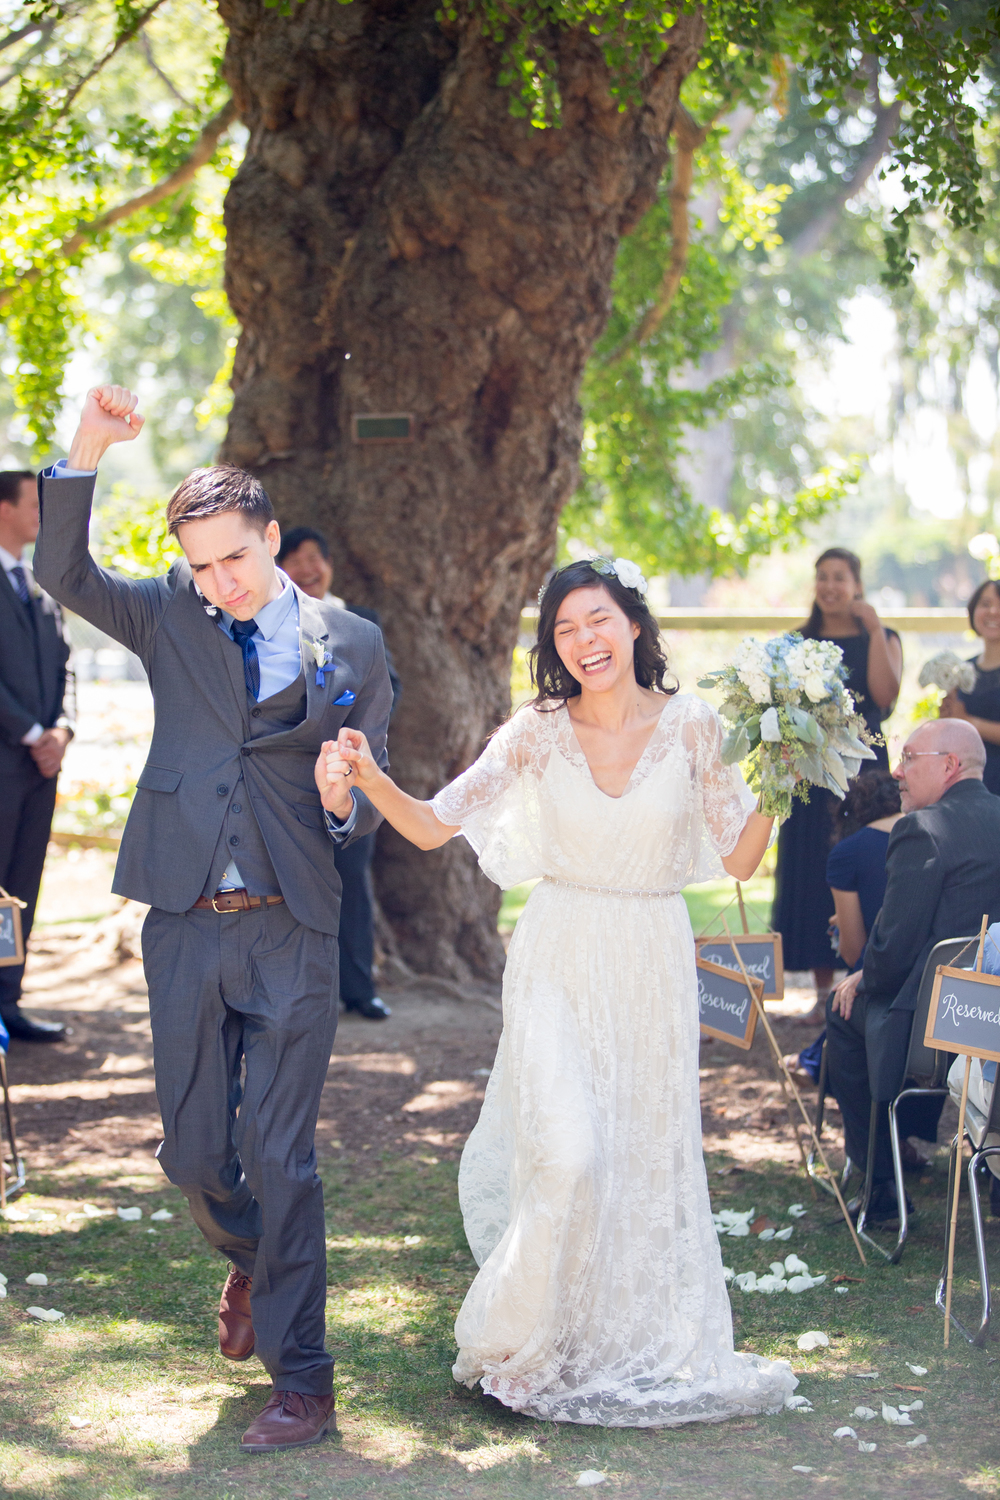 Chico California Wedding and Engagement Photography by TréCreative - Fremont Wedding Photography (186 of 261).jpg